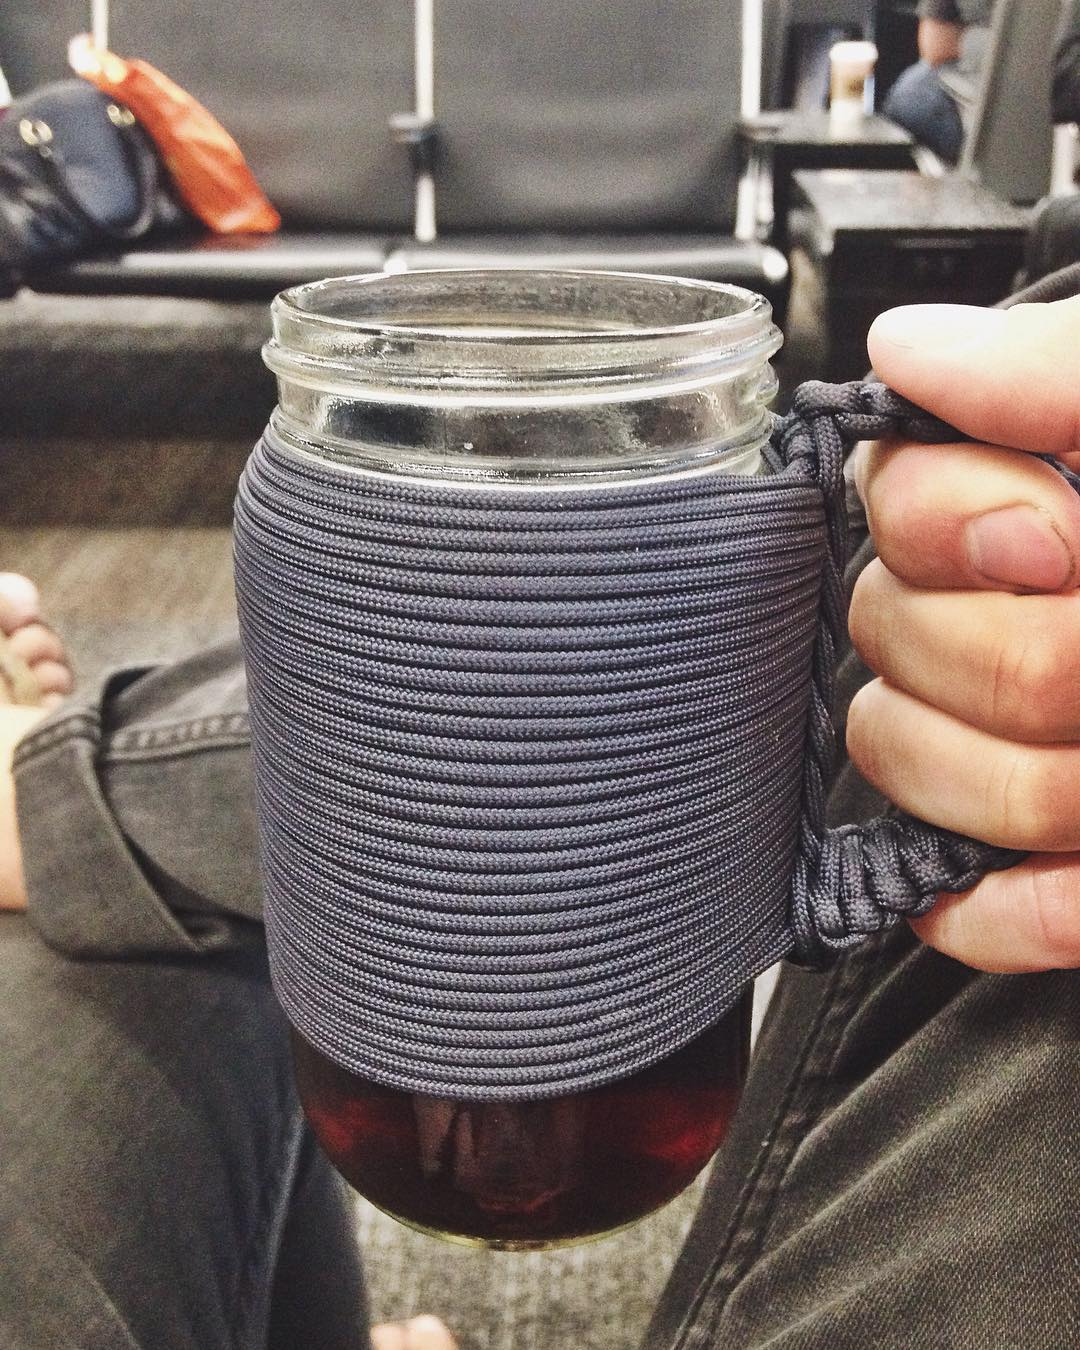 ~ Adventure Mug ~  We always travel with the durable and reusable Adventure Mug. The screw on top and paracord handle makes maneuvering through crowded airports with a hot coffee simple and spill free.  Pick one up in our online shop for your next...